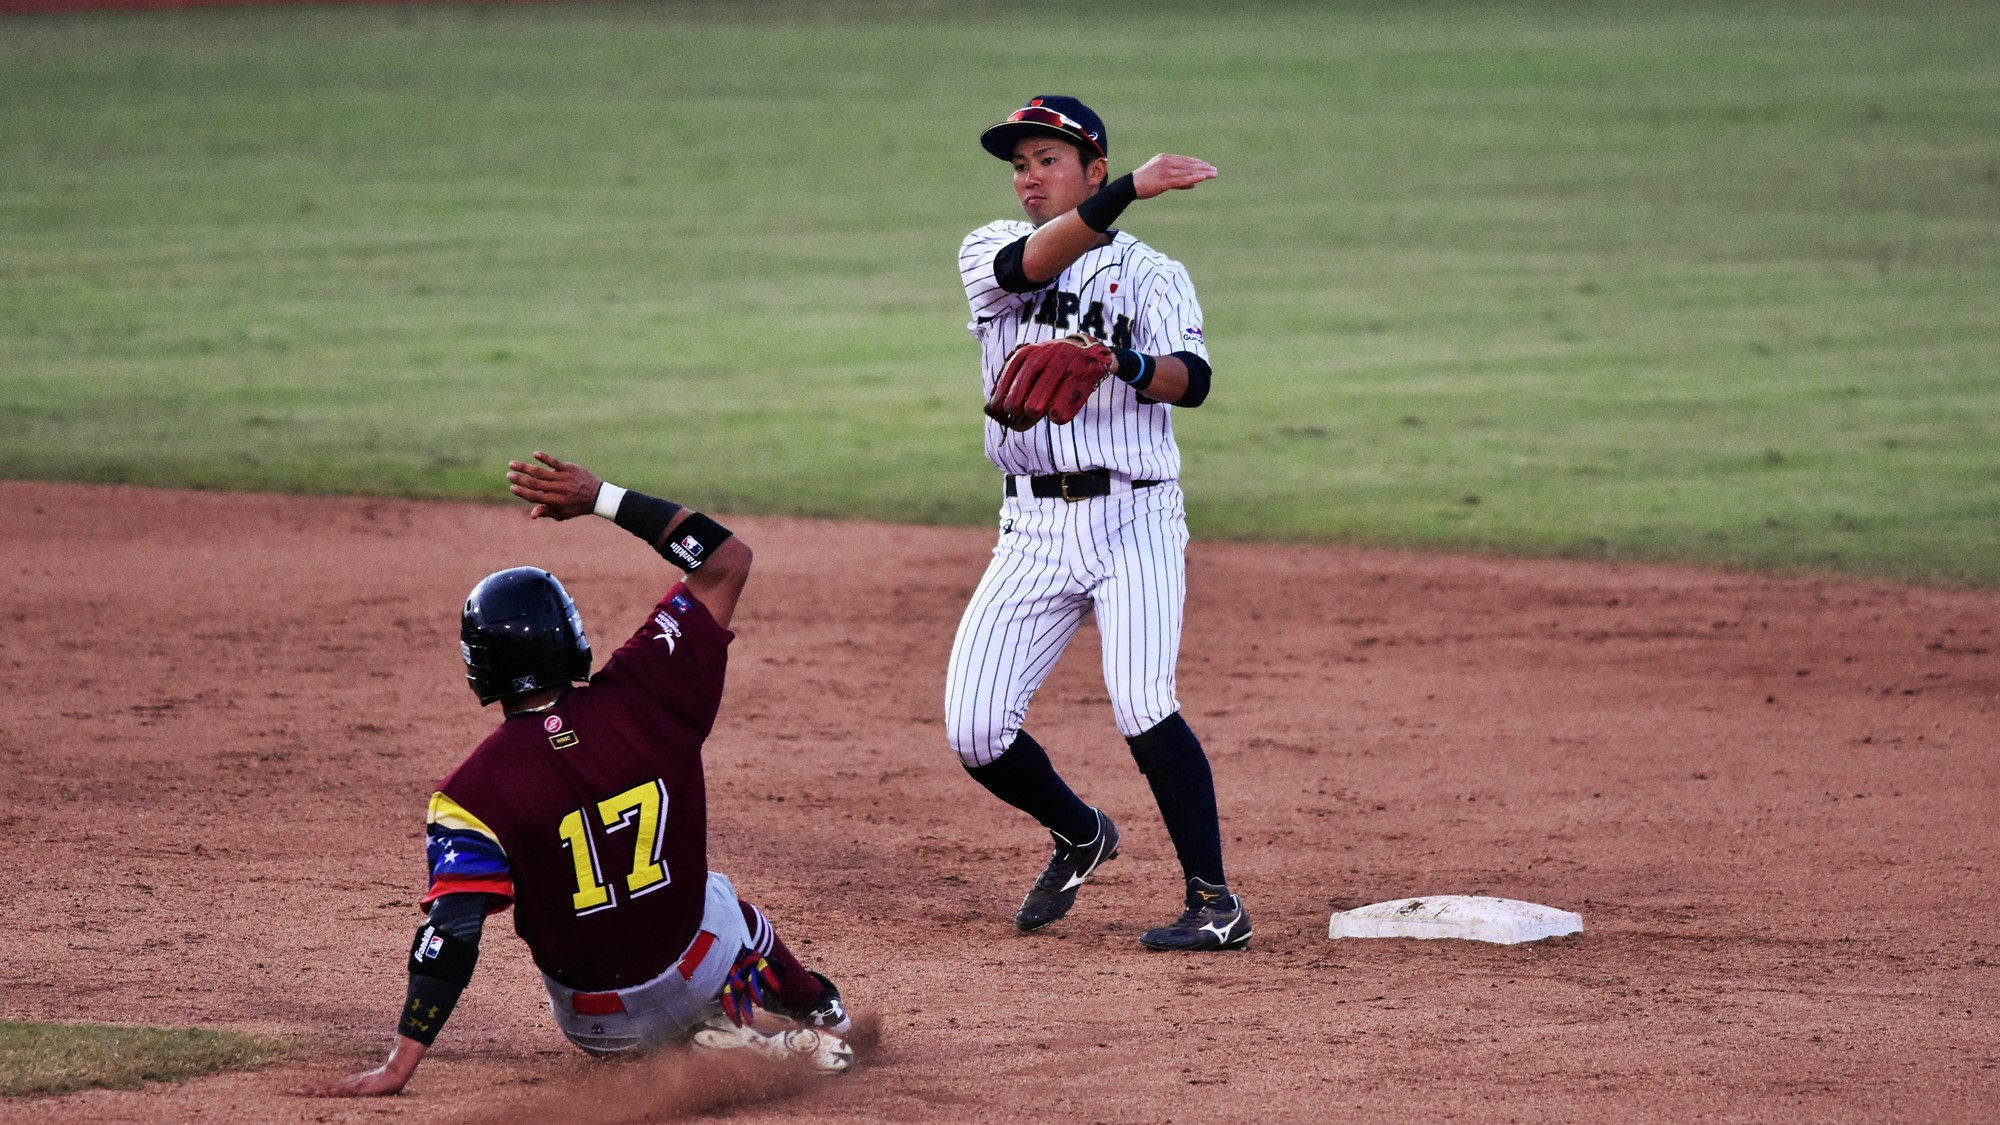 Japan's Taiga Matsuo turns a double play over Jorma Rodriguez of Venezuela